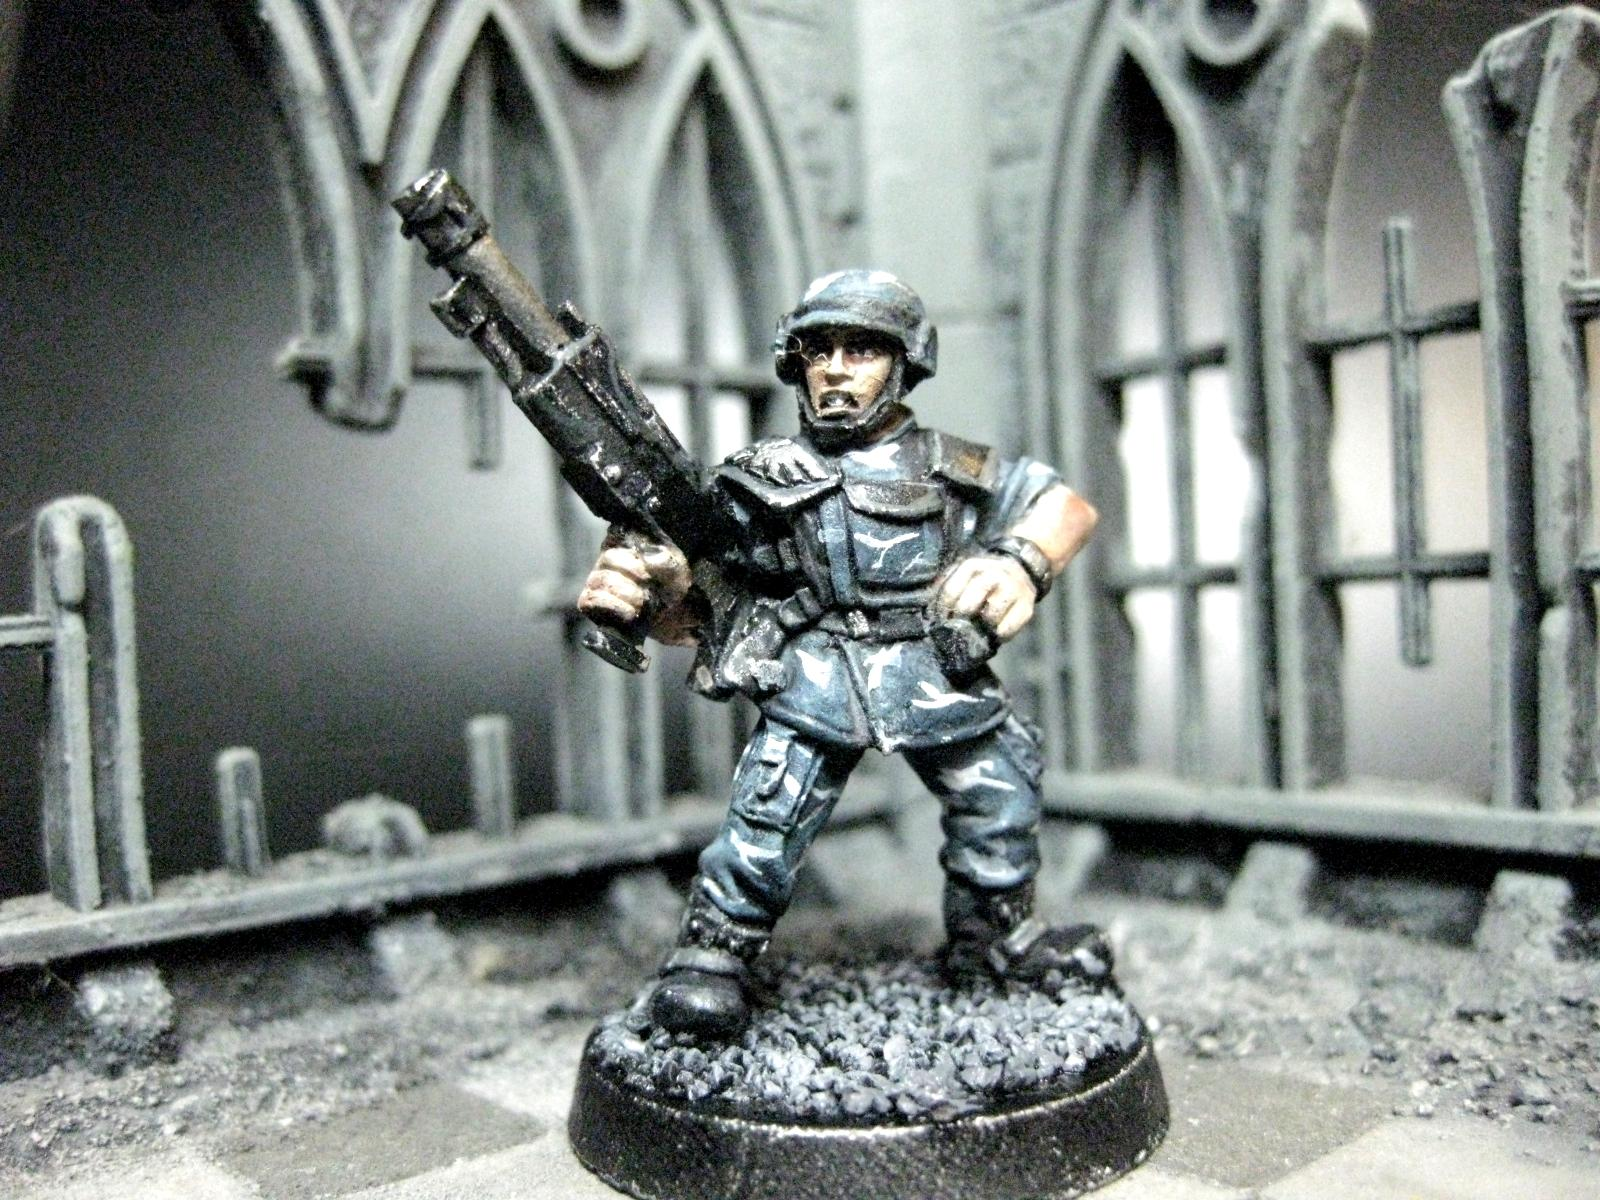 2nd Edition, Astra Militarum, Cadians, Imperial Guard, Out Of Production, Retro, Urban Camo